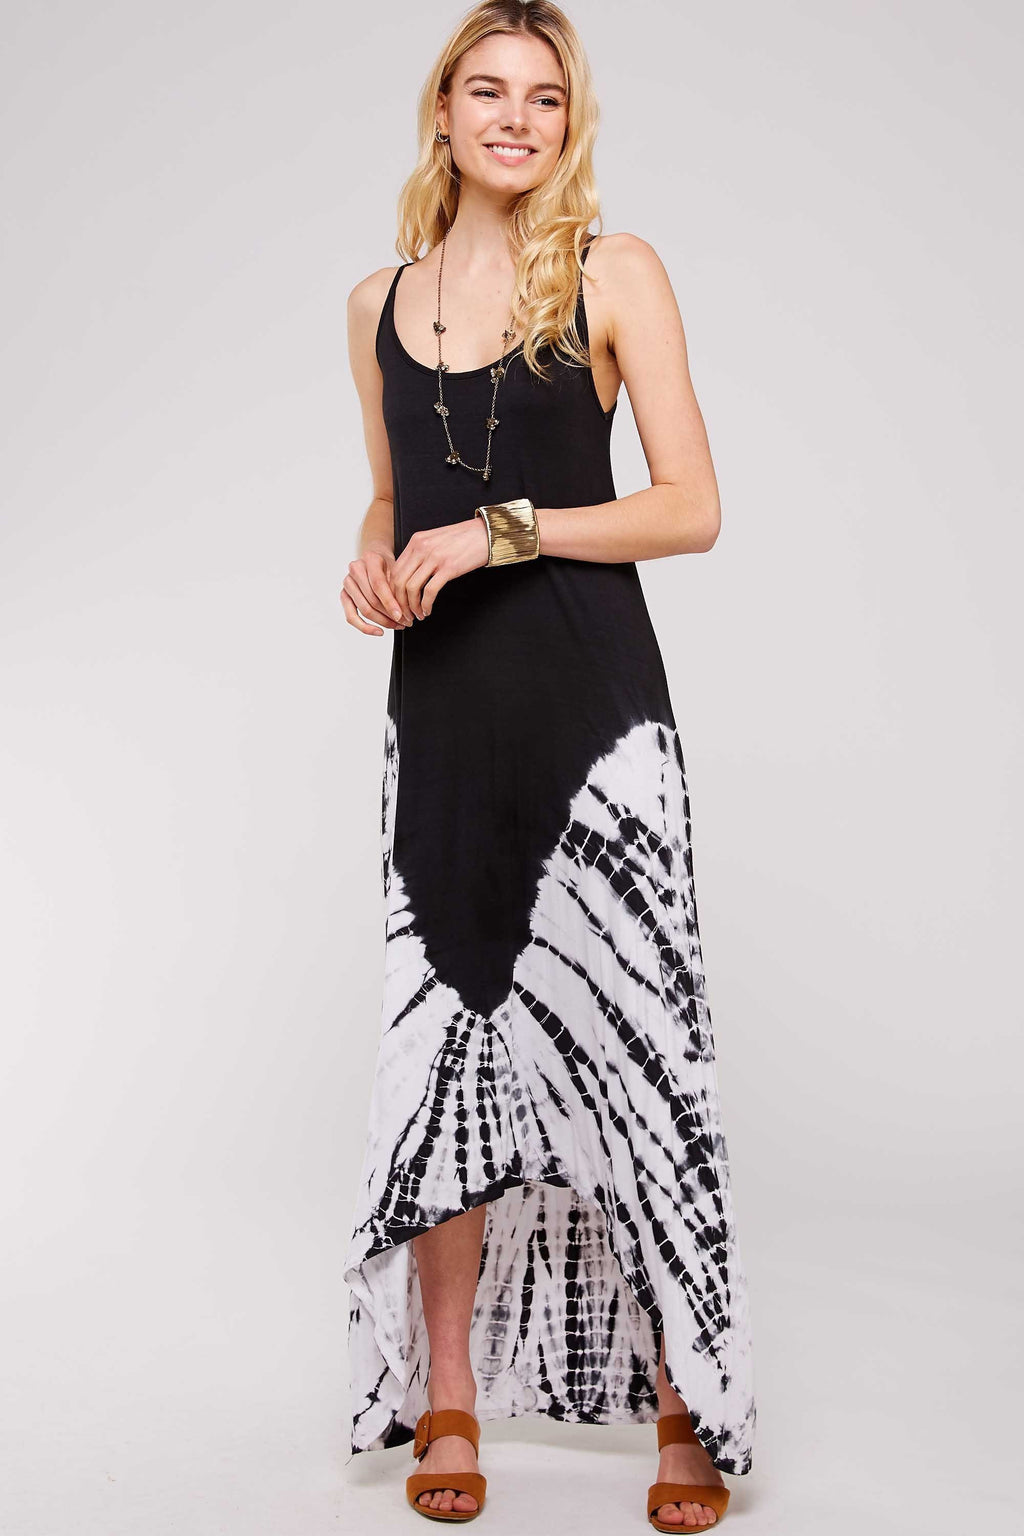 Wholesale Clothing, Online Wholesale Clothing, Women Clothing, Bohemian, Free People, tiedye, specialty wash, wholesale seller, wholesale women clothing shop, gypsy look, USA made, URBAN X APPAREL-DRESSES-UDR225BW, fashiontrend2019